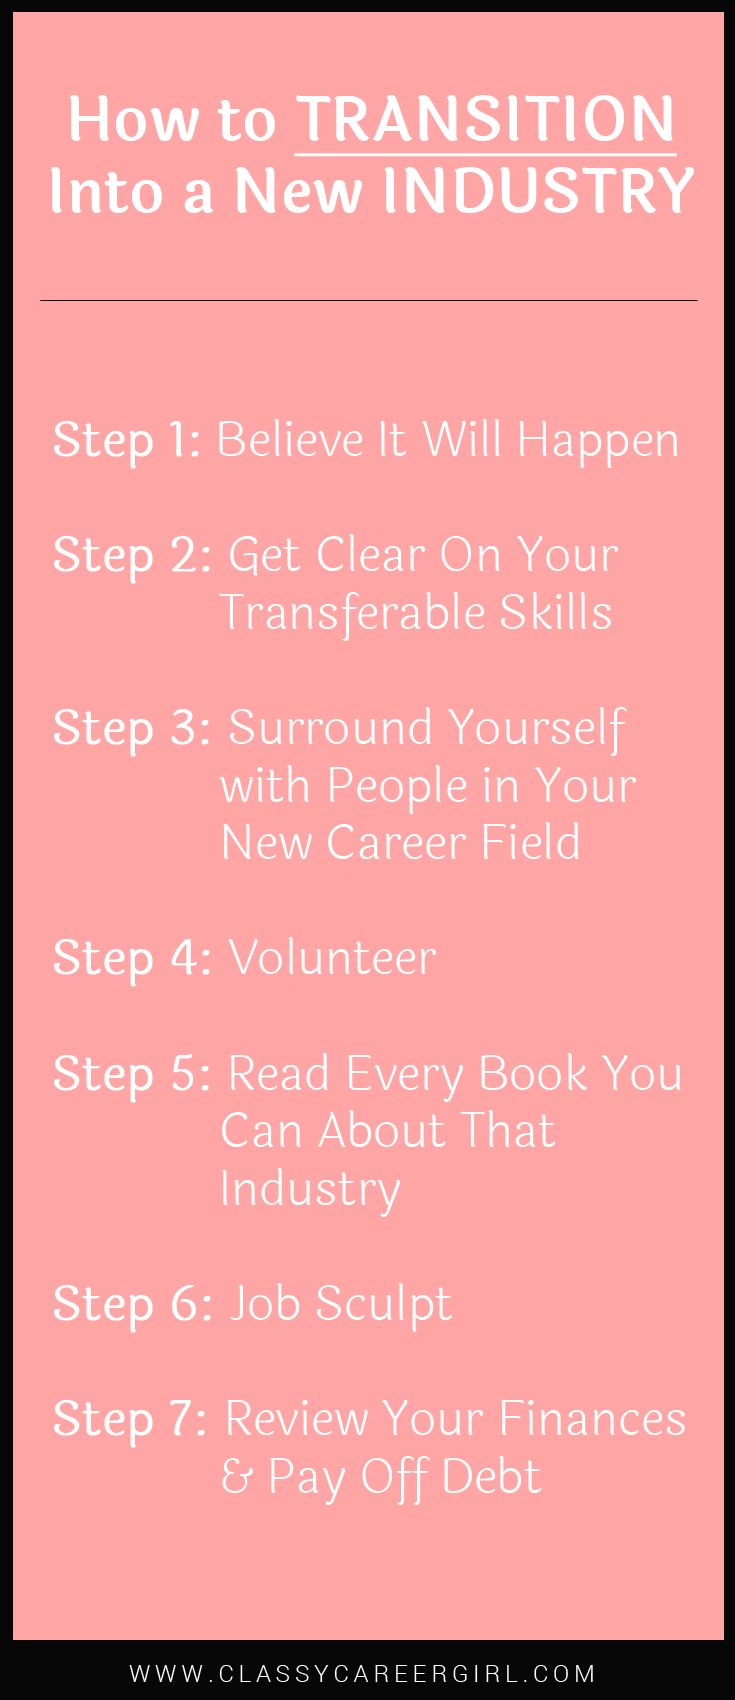 25 best for students images on pinterest school gym and learning how to transition into a new industry list fandeluxe Image collections